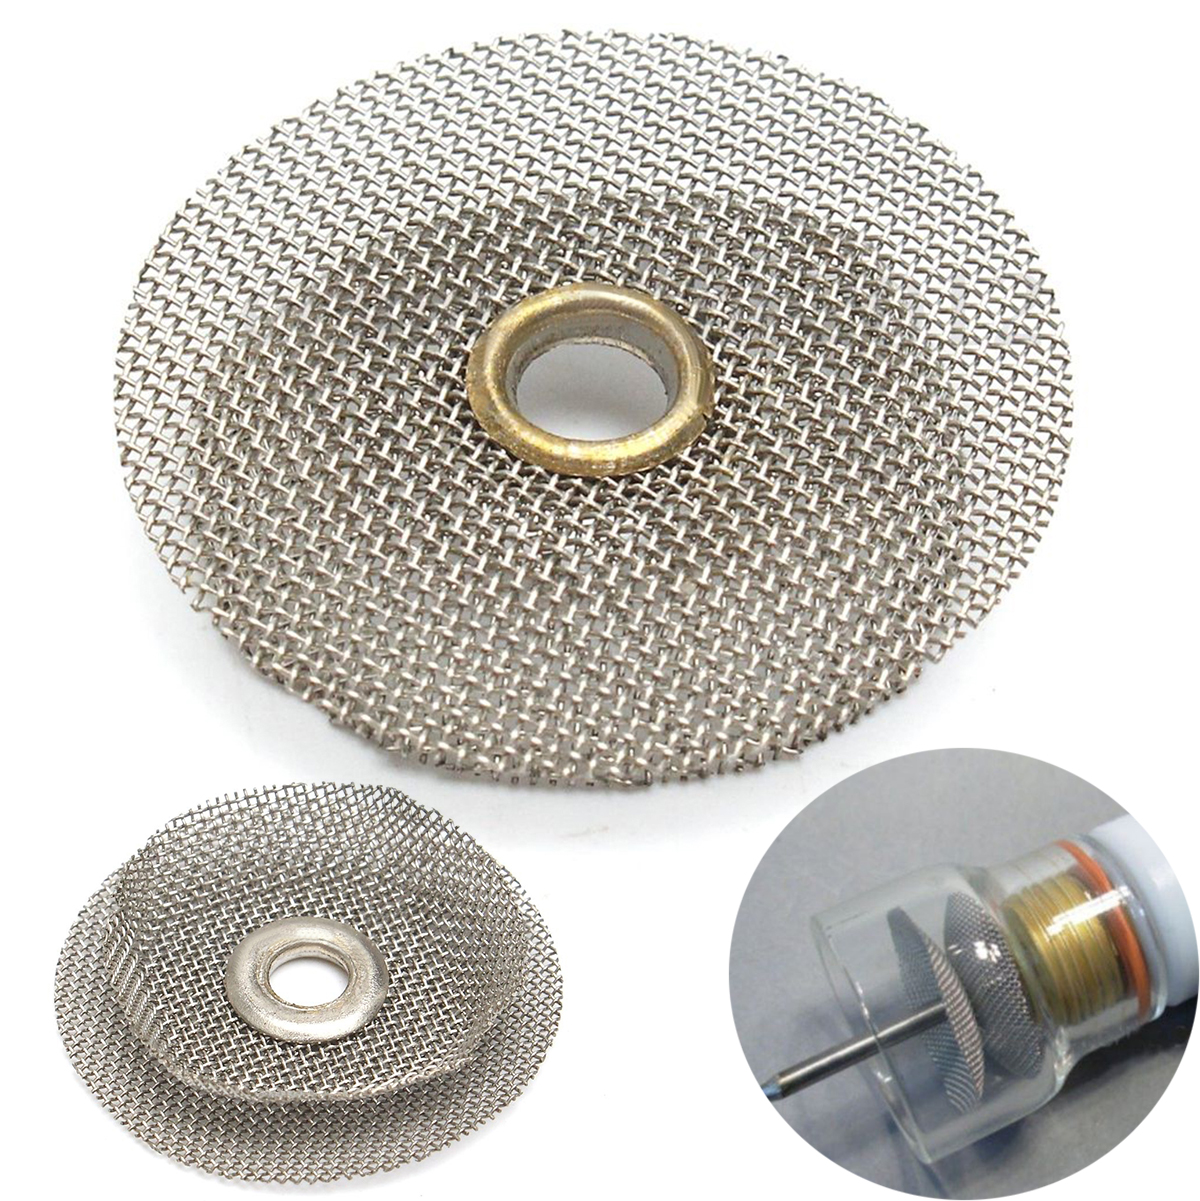 1pc Gray TIG Welding Weld Pyrex Cup Kit Steel Wire Filter 22*18*4mm For Torches Gas Lens Mayitr Welding Accessories thermocouple spot welding machine tl weld metal ball lotus wire feeder thermocouple welding